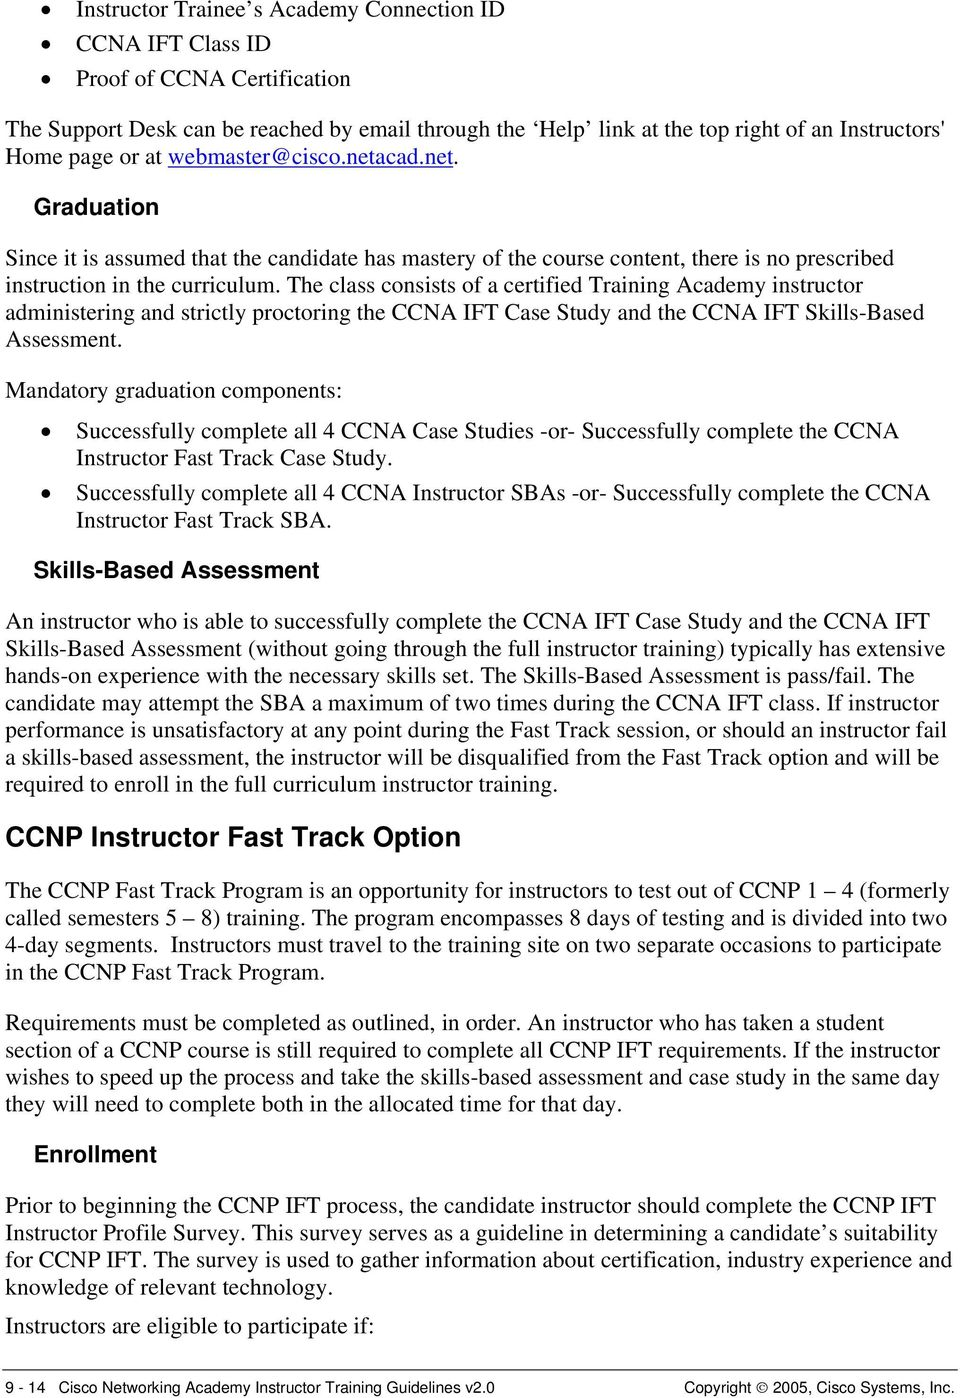 Cisco Networking Academy Instructor Training Guidelines Revised